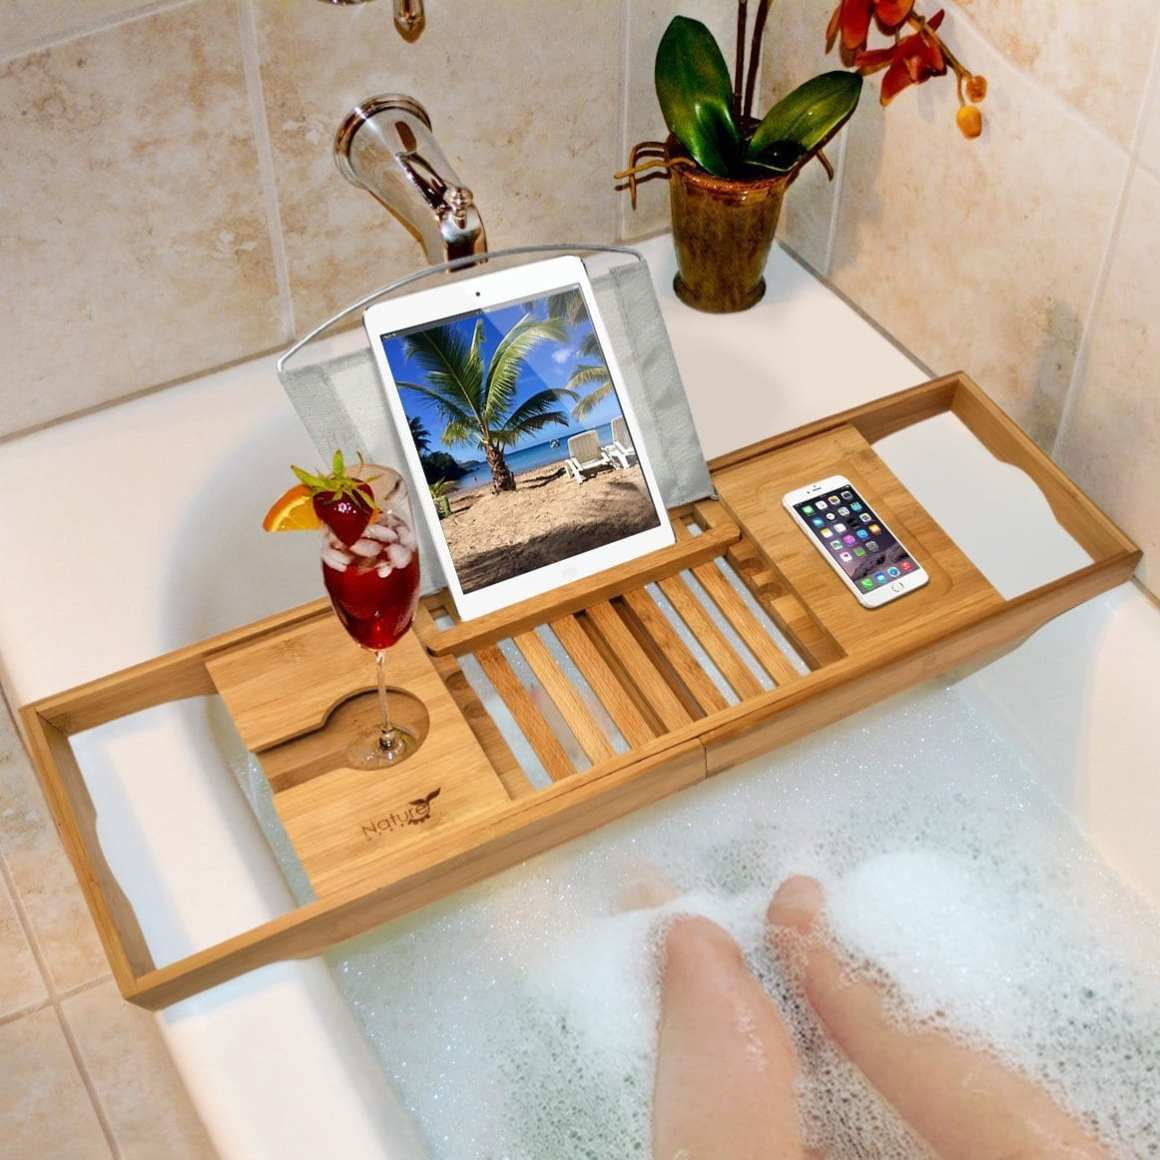 cozy home bathcaddy